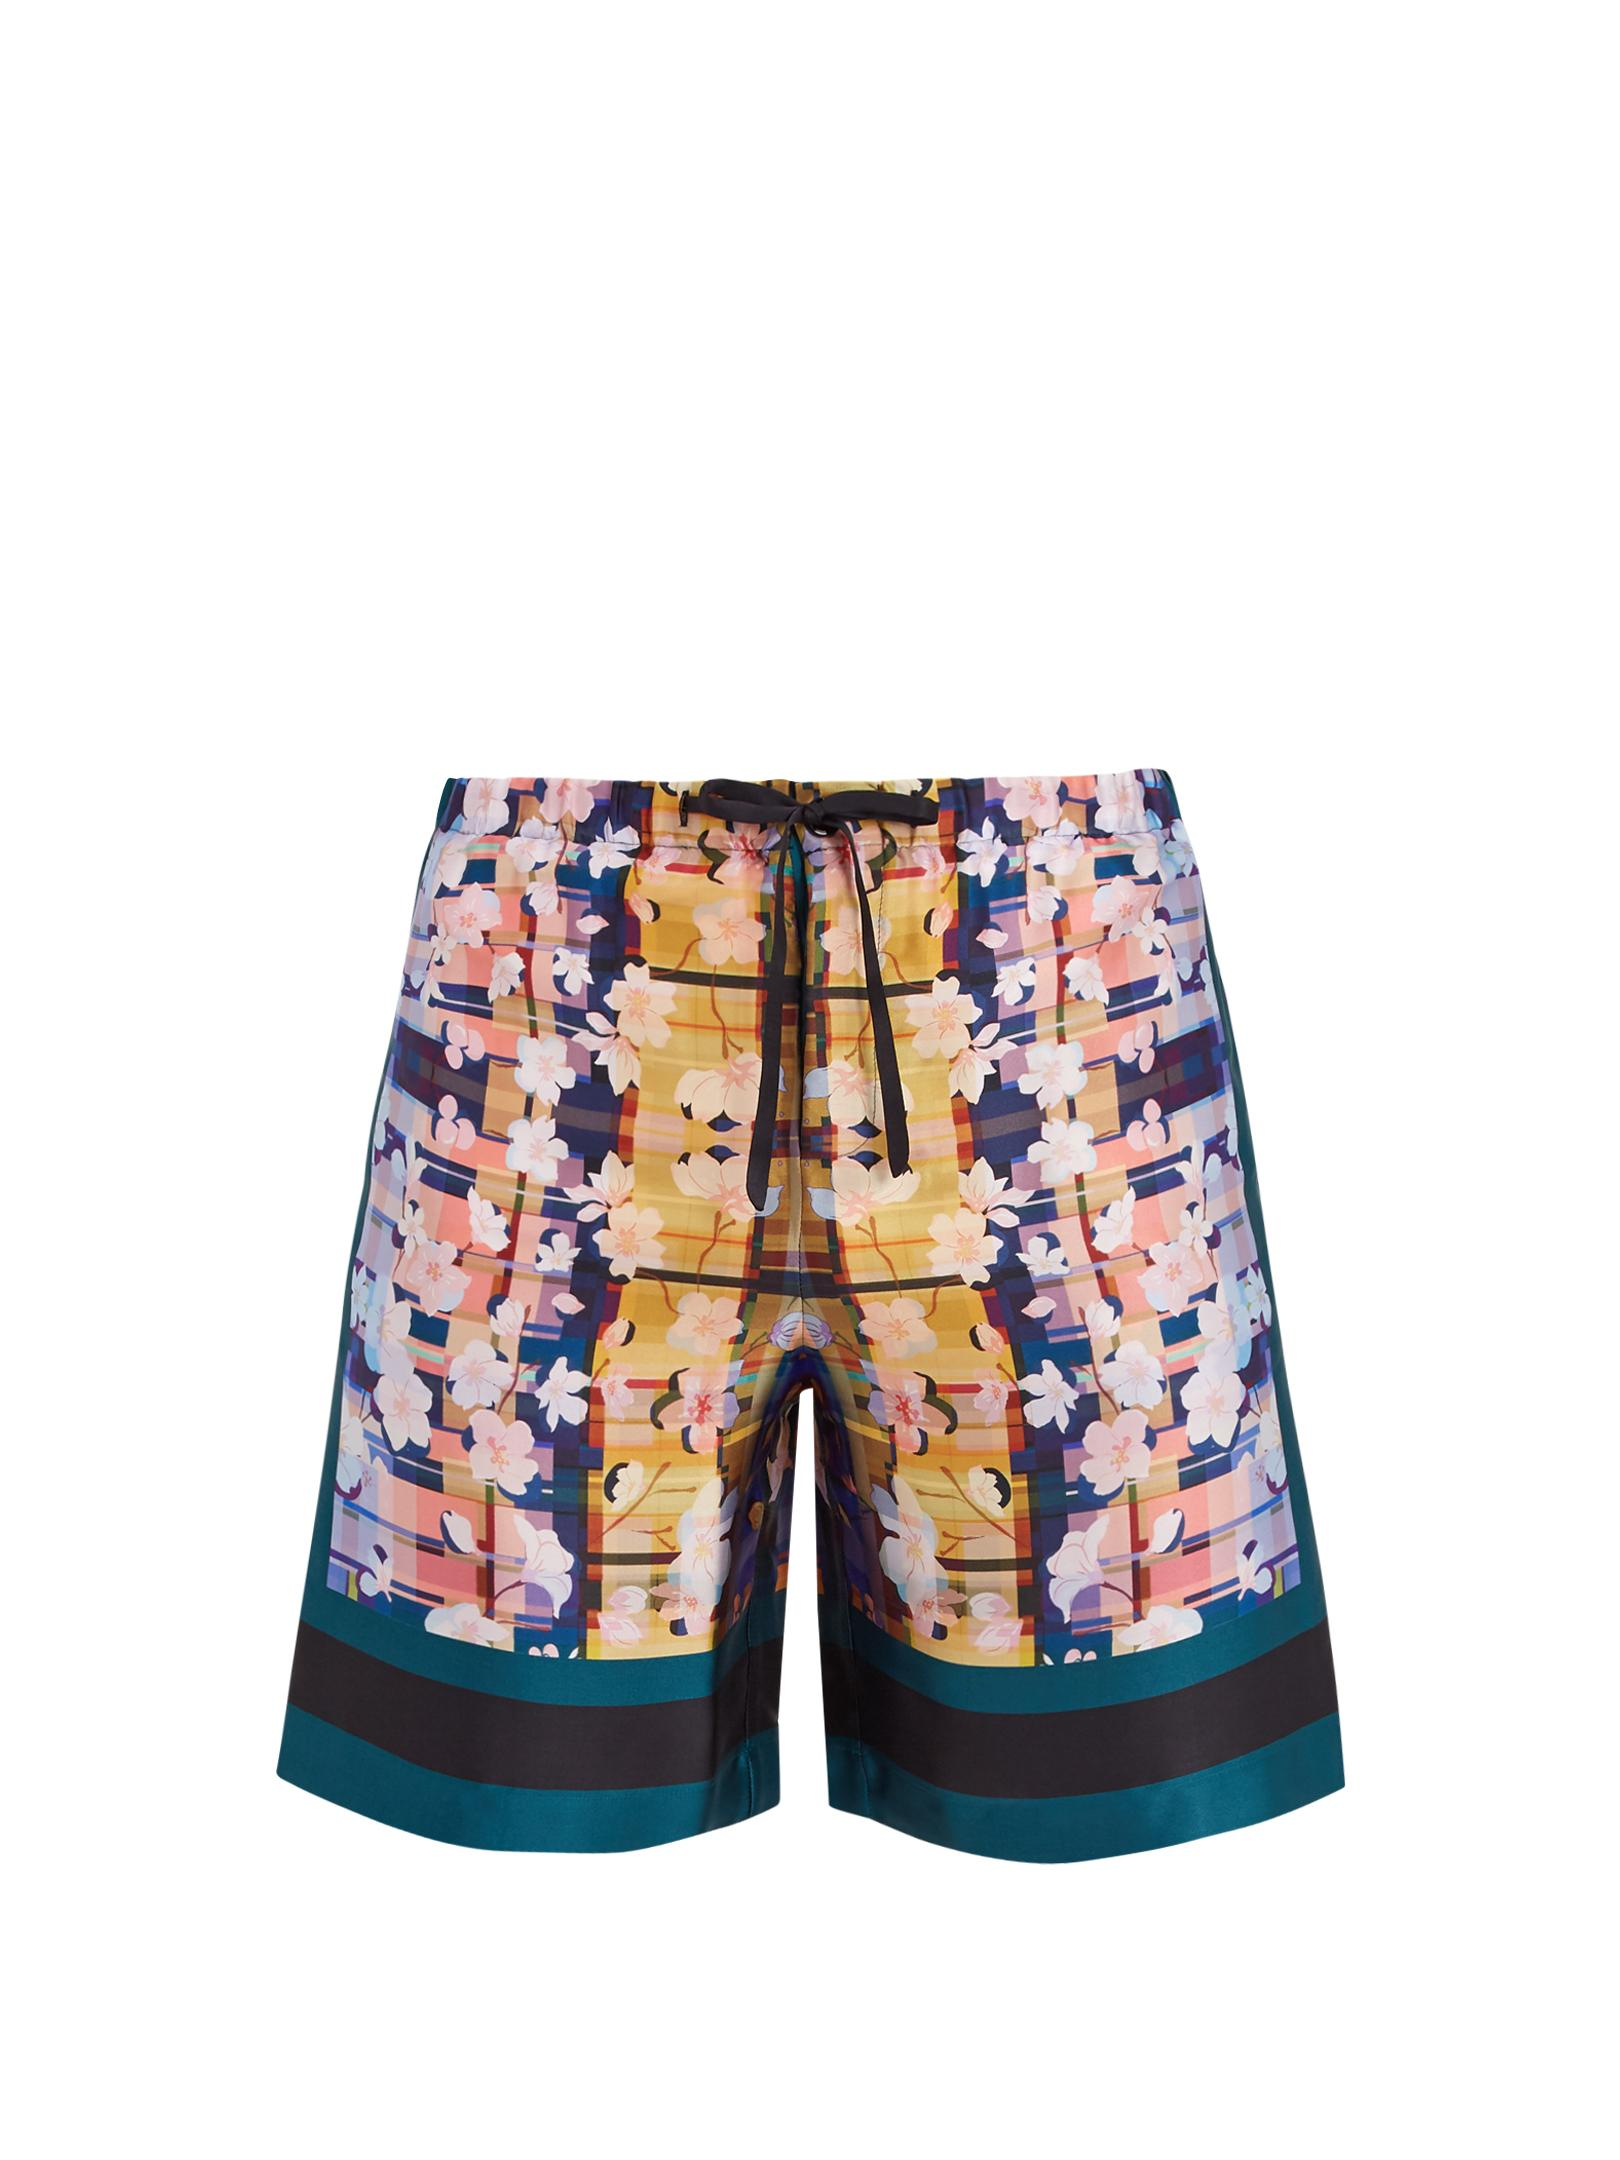 Find silk pajama shorts at ShopStyle. Shop the latest collection of silk pajama shorts from the most popular stores - all in one place.